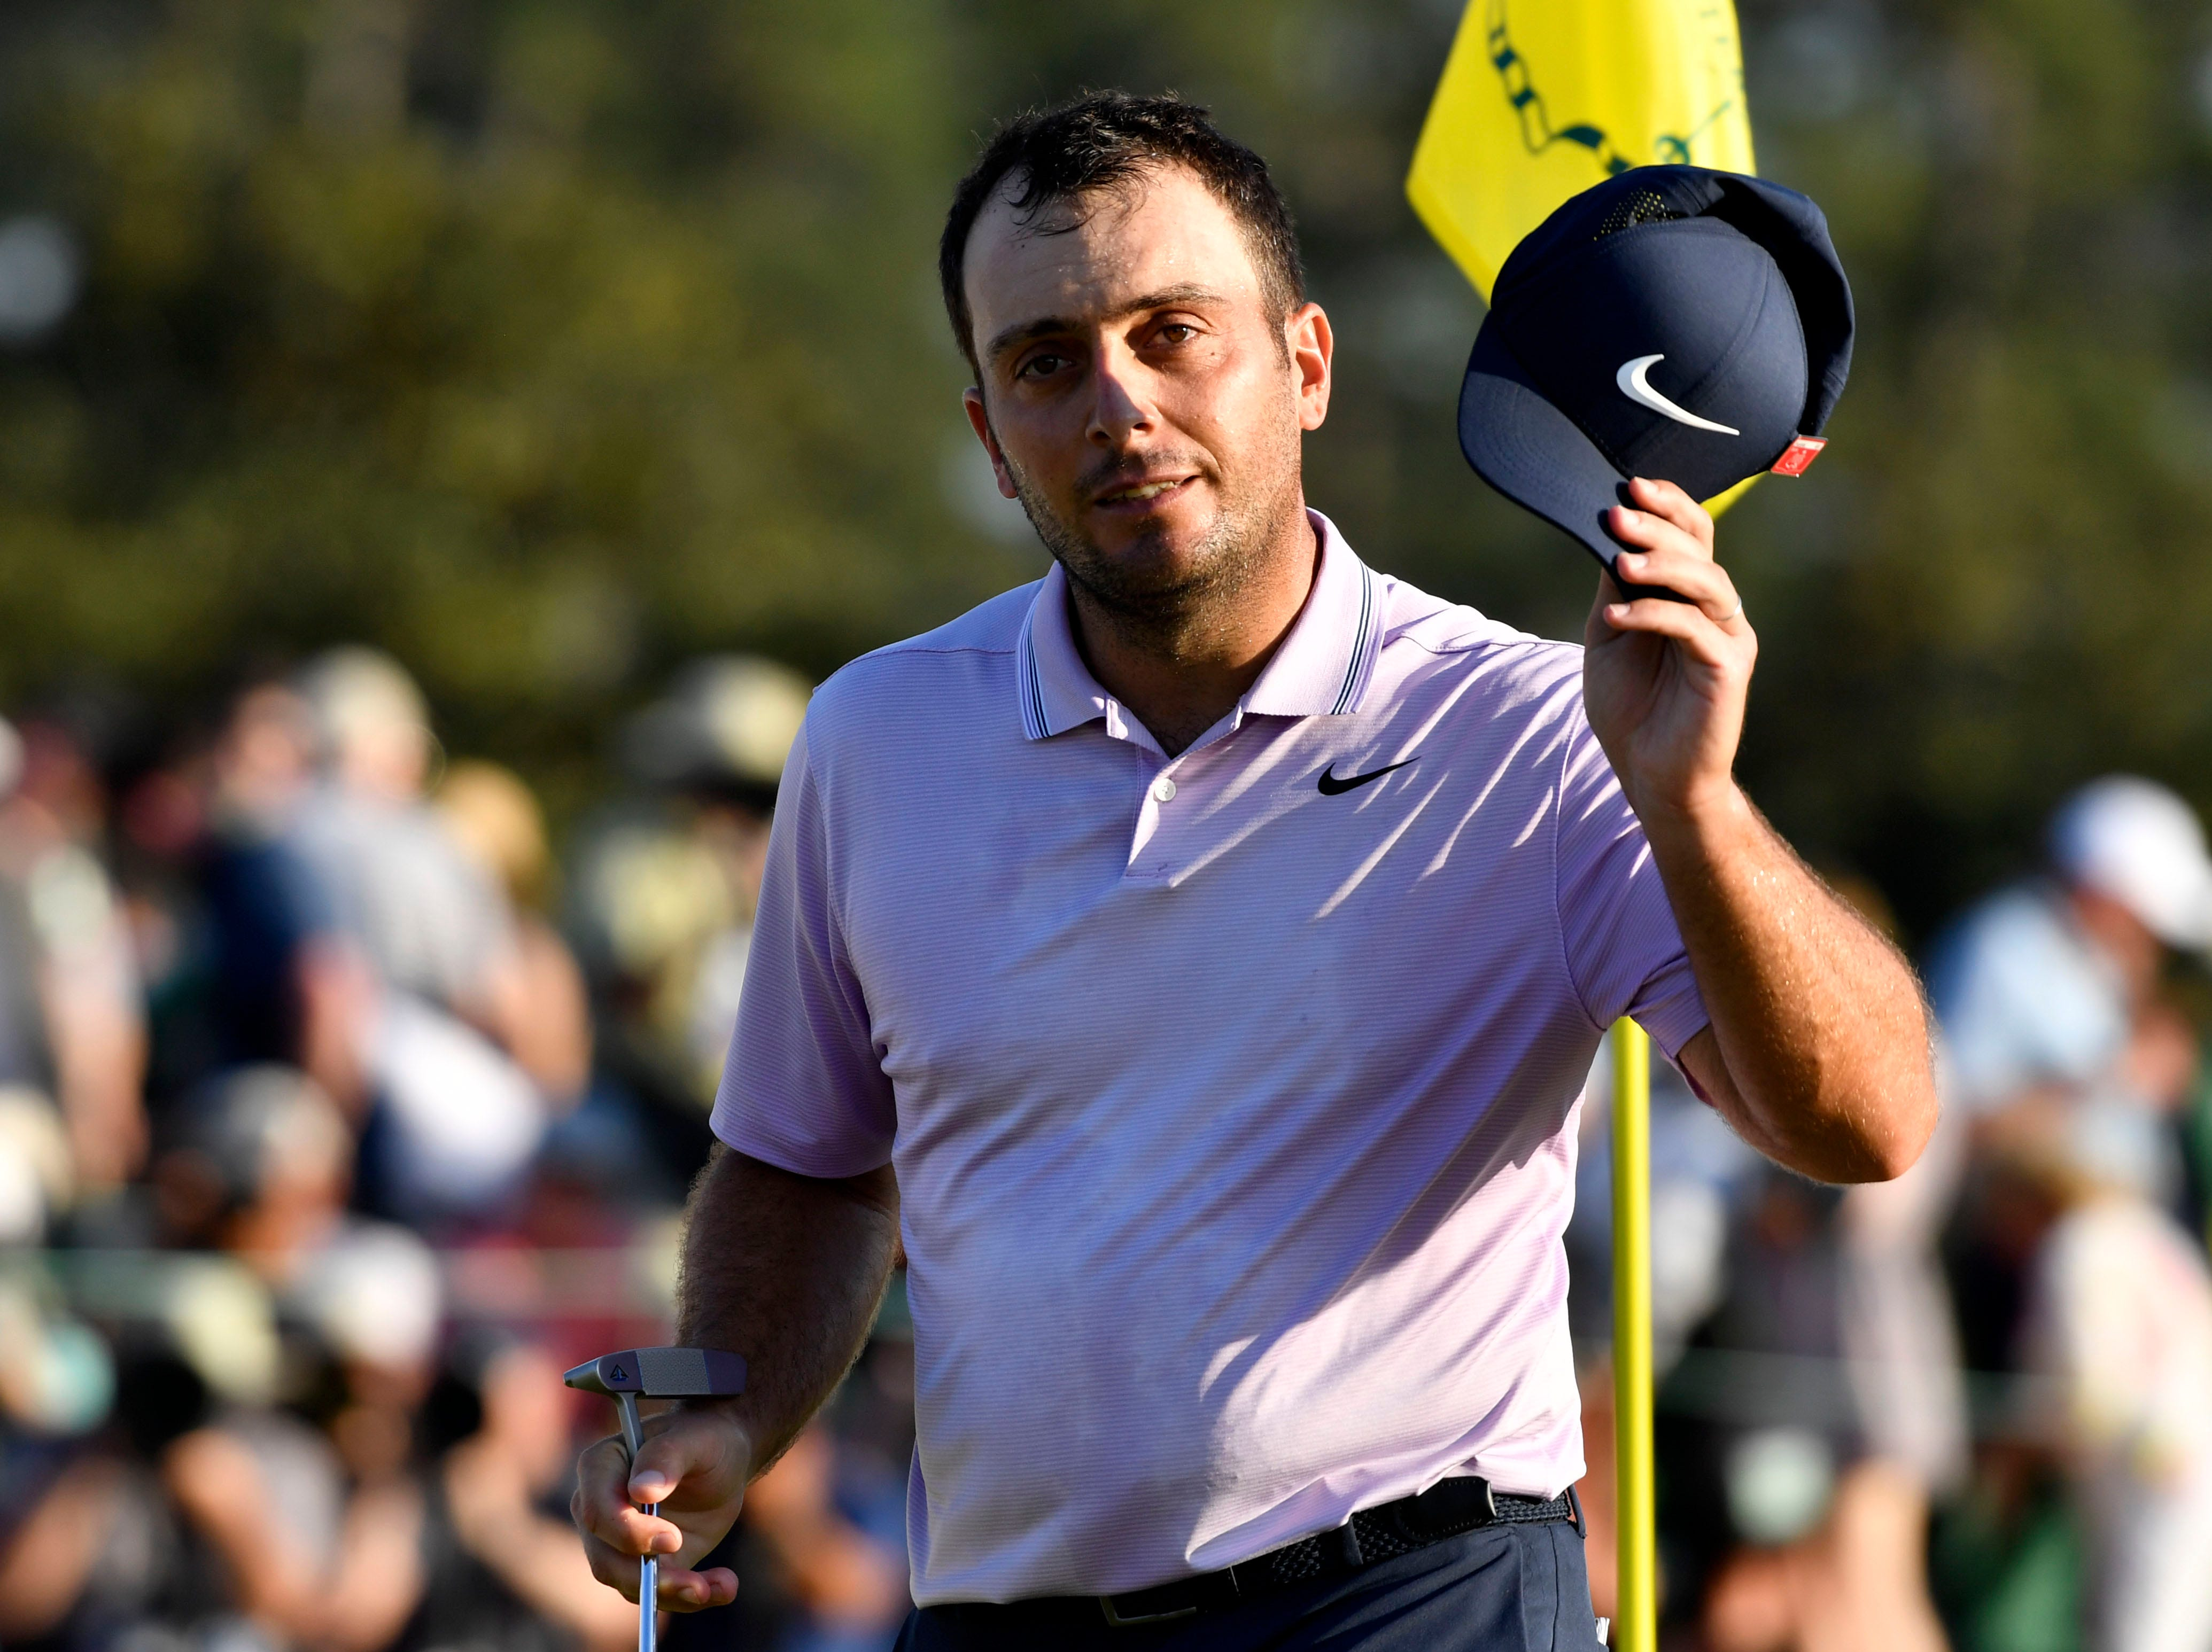 Francesco Molinari waves to the crowd on the 18th green during the third round of the Masters.